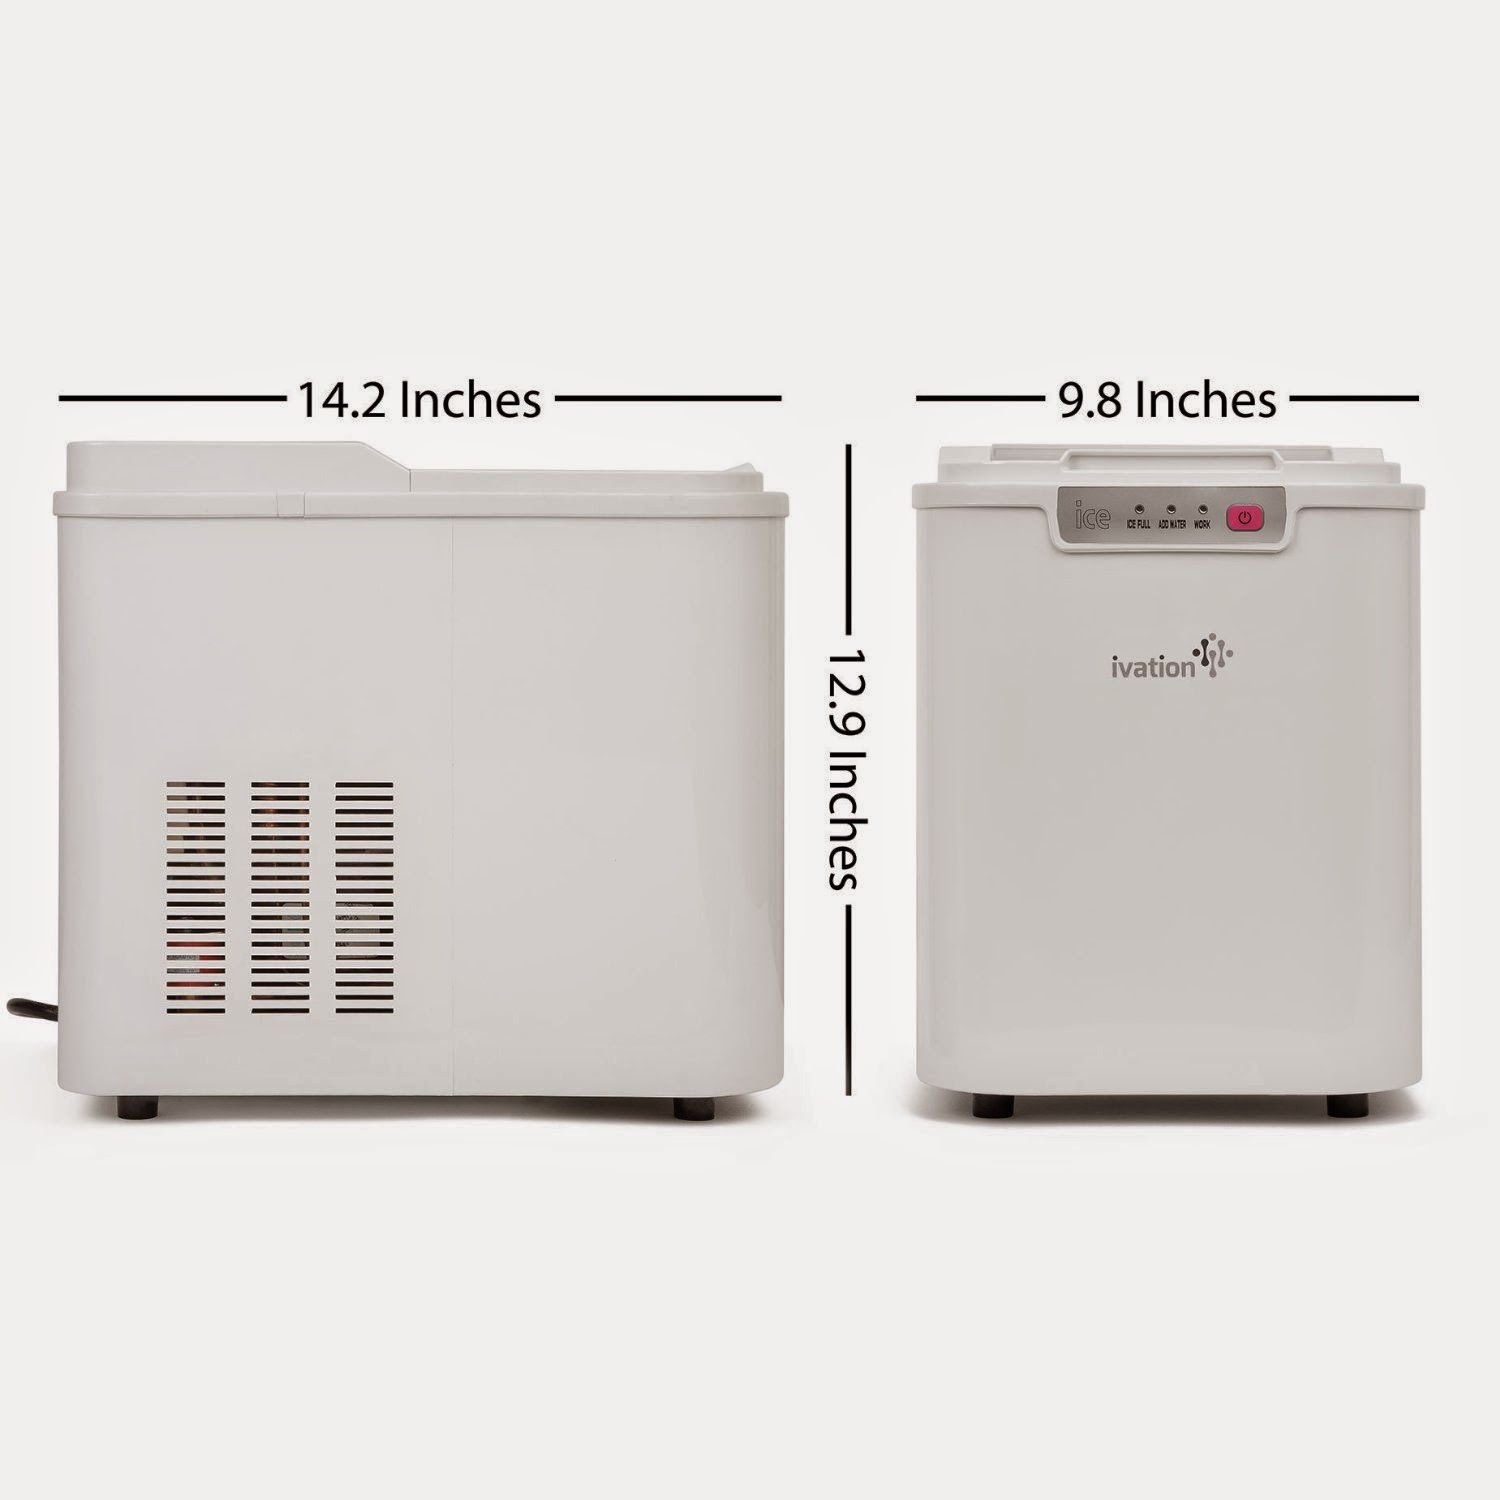 Ivation Portable Compact High Capacity Household Ice Maker - Features 2.2-Liter Water Reservoir - Yields up to 26.5 Pounds of Ice Daily